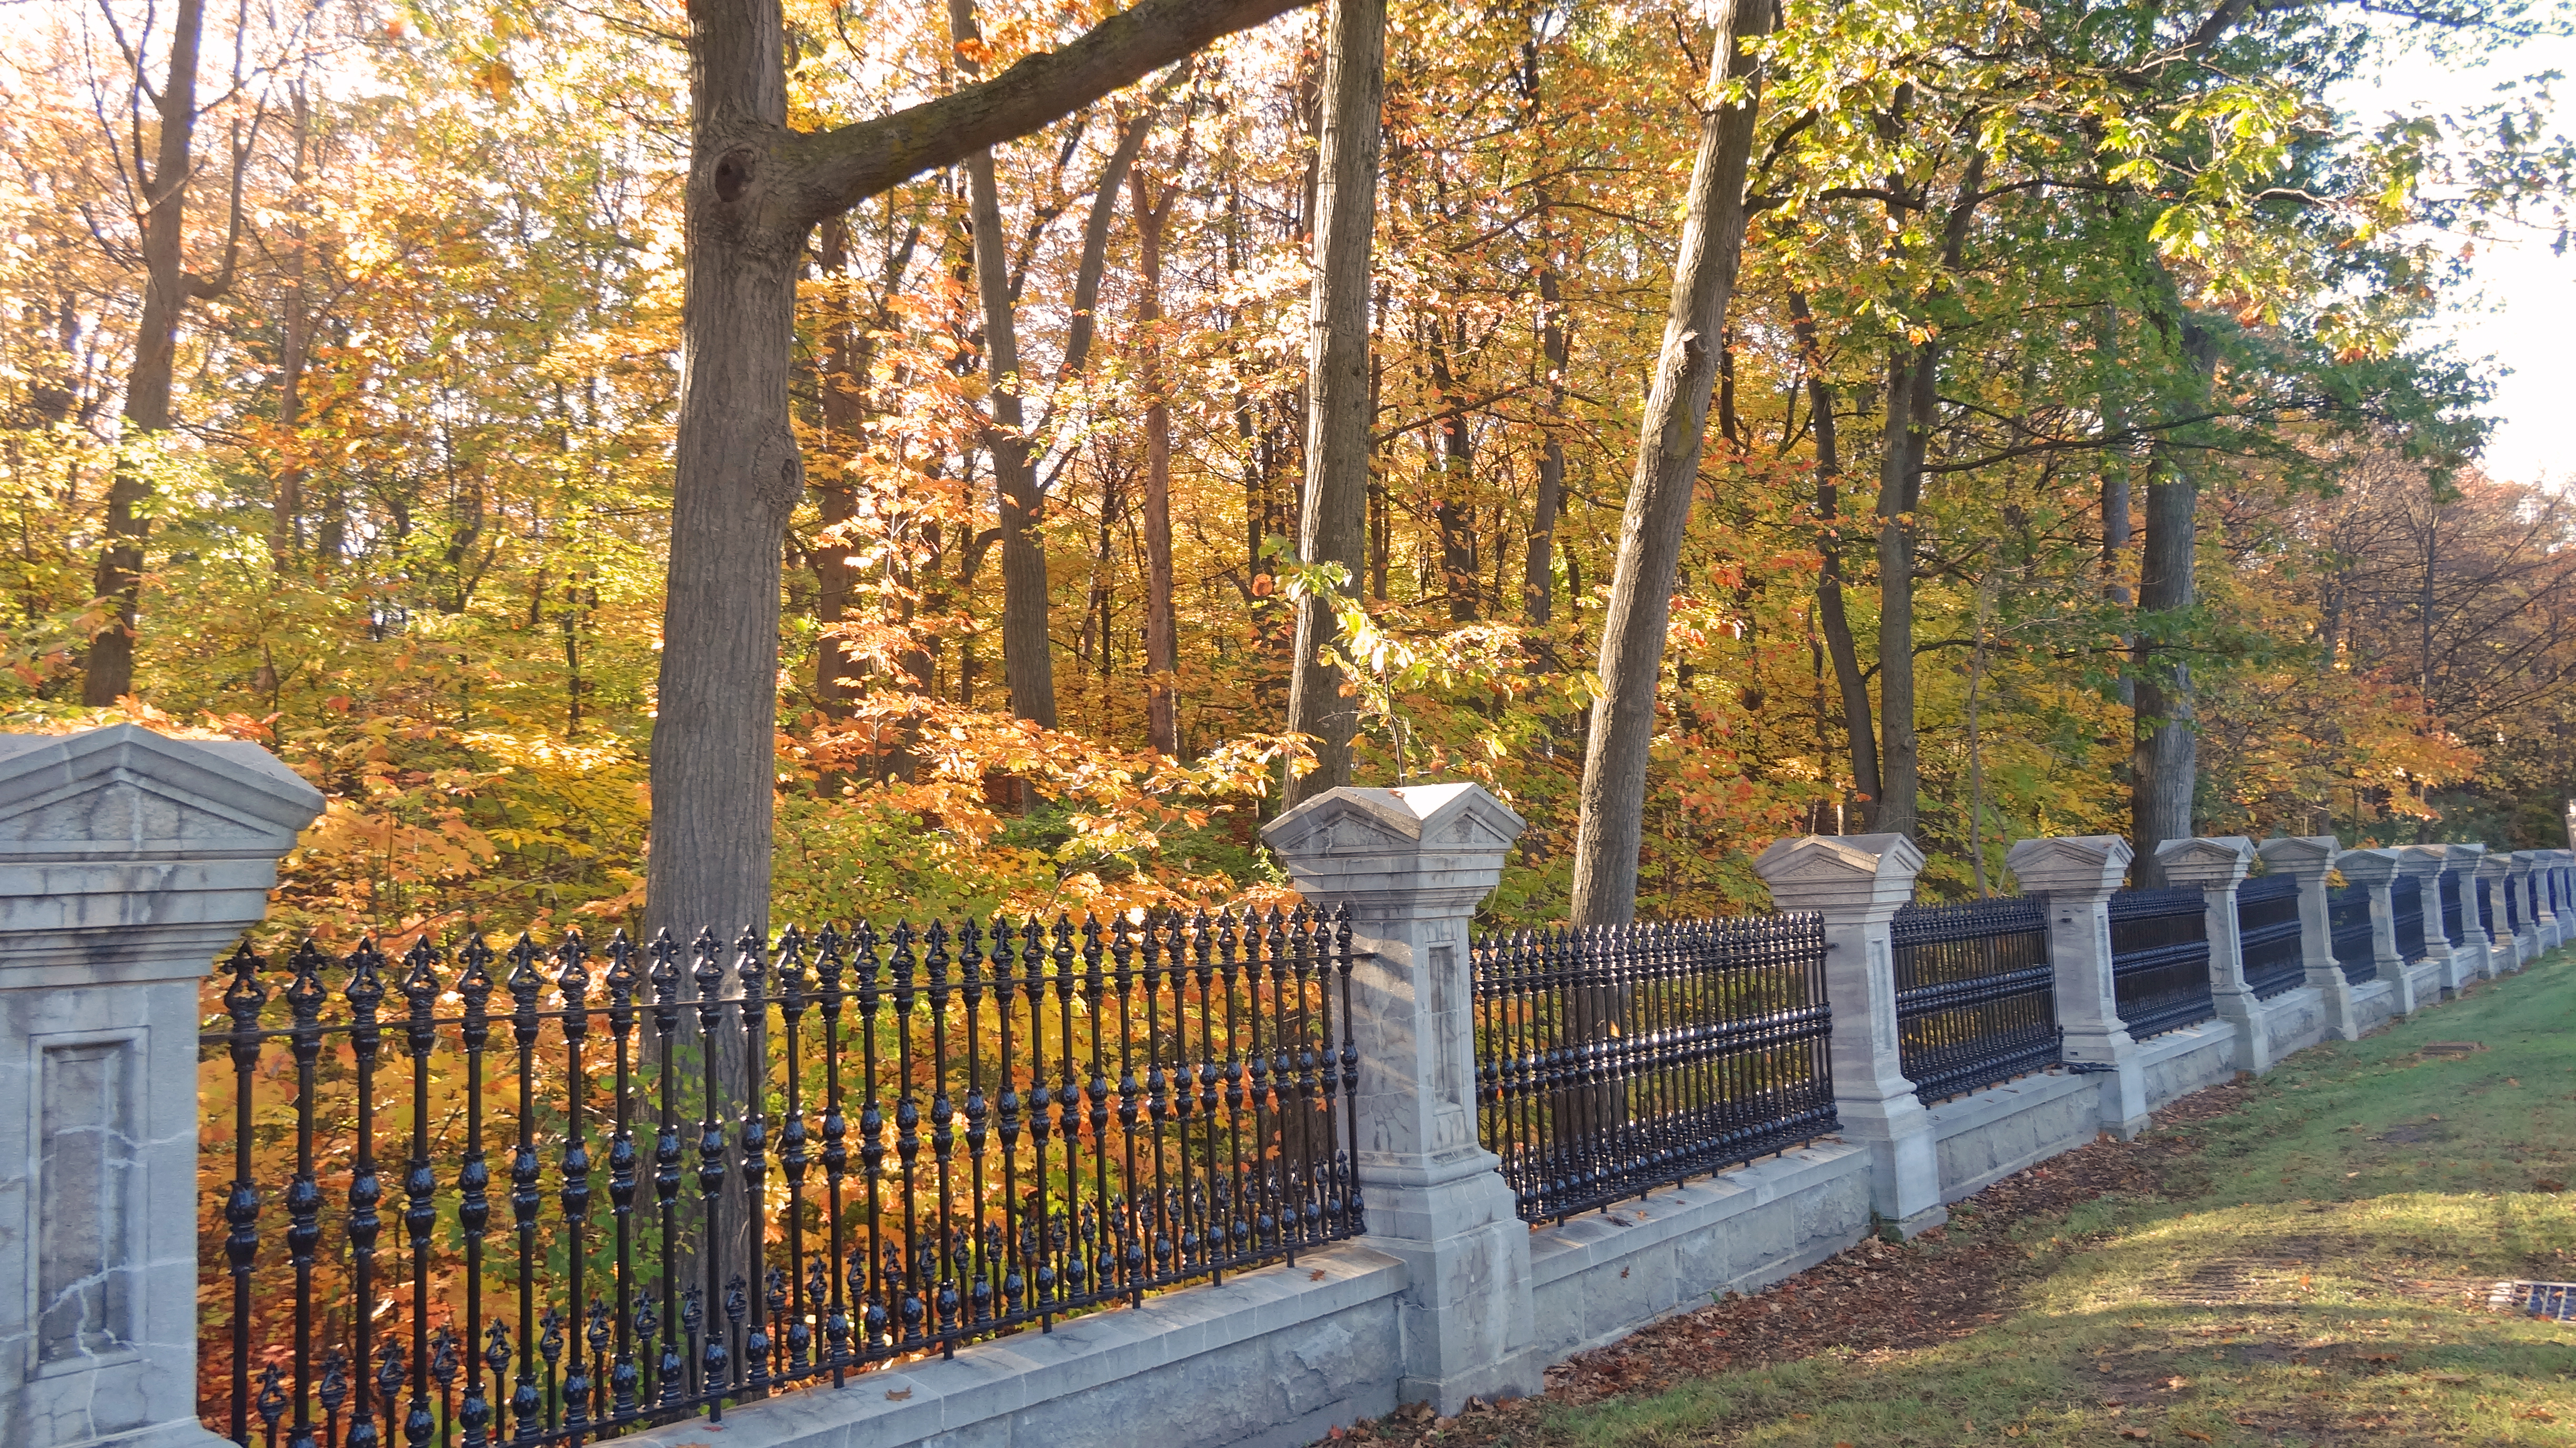 File:Rideau Hall fences in autumn.jpg - Wikimedia Commons